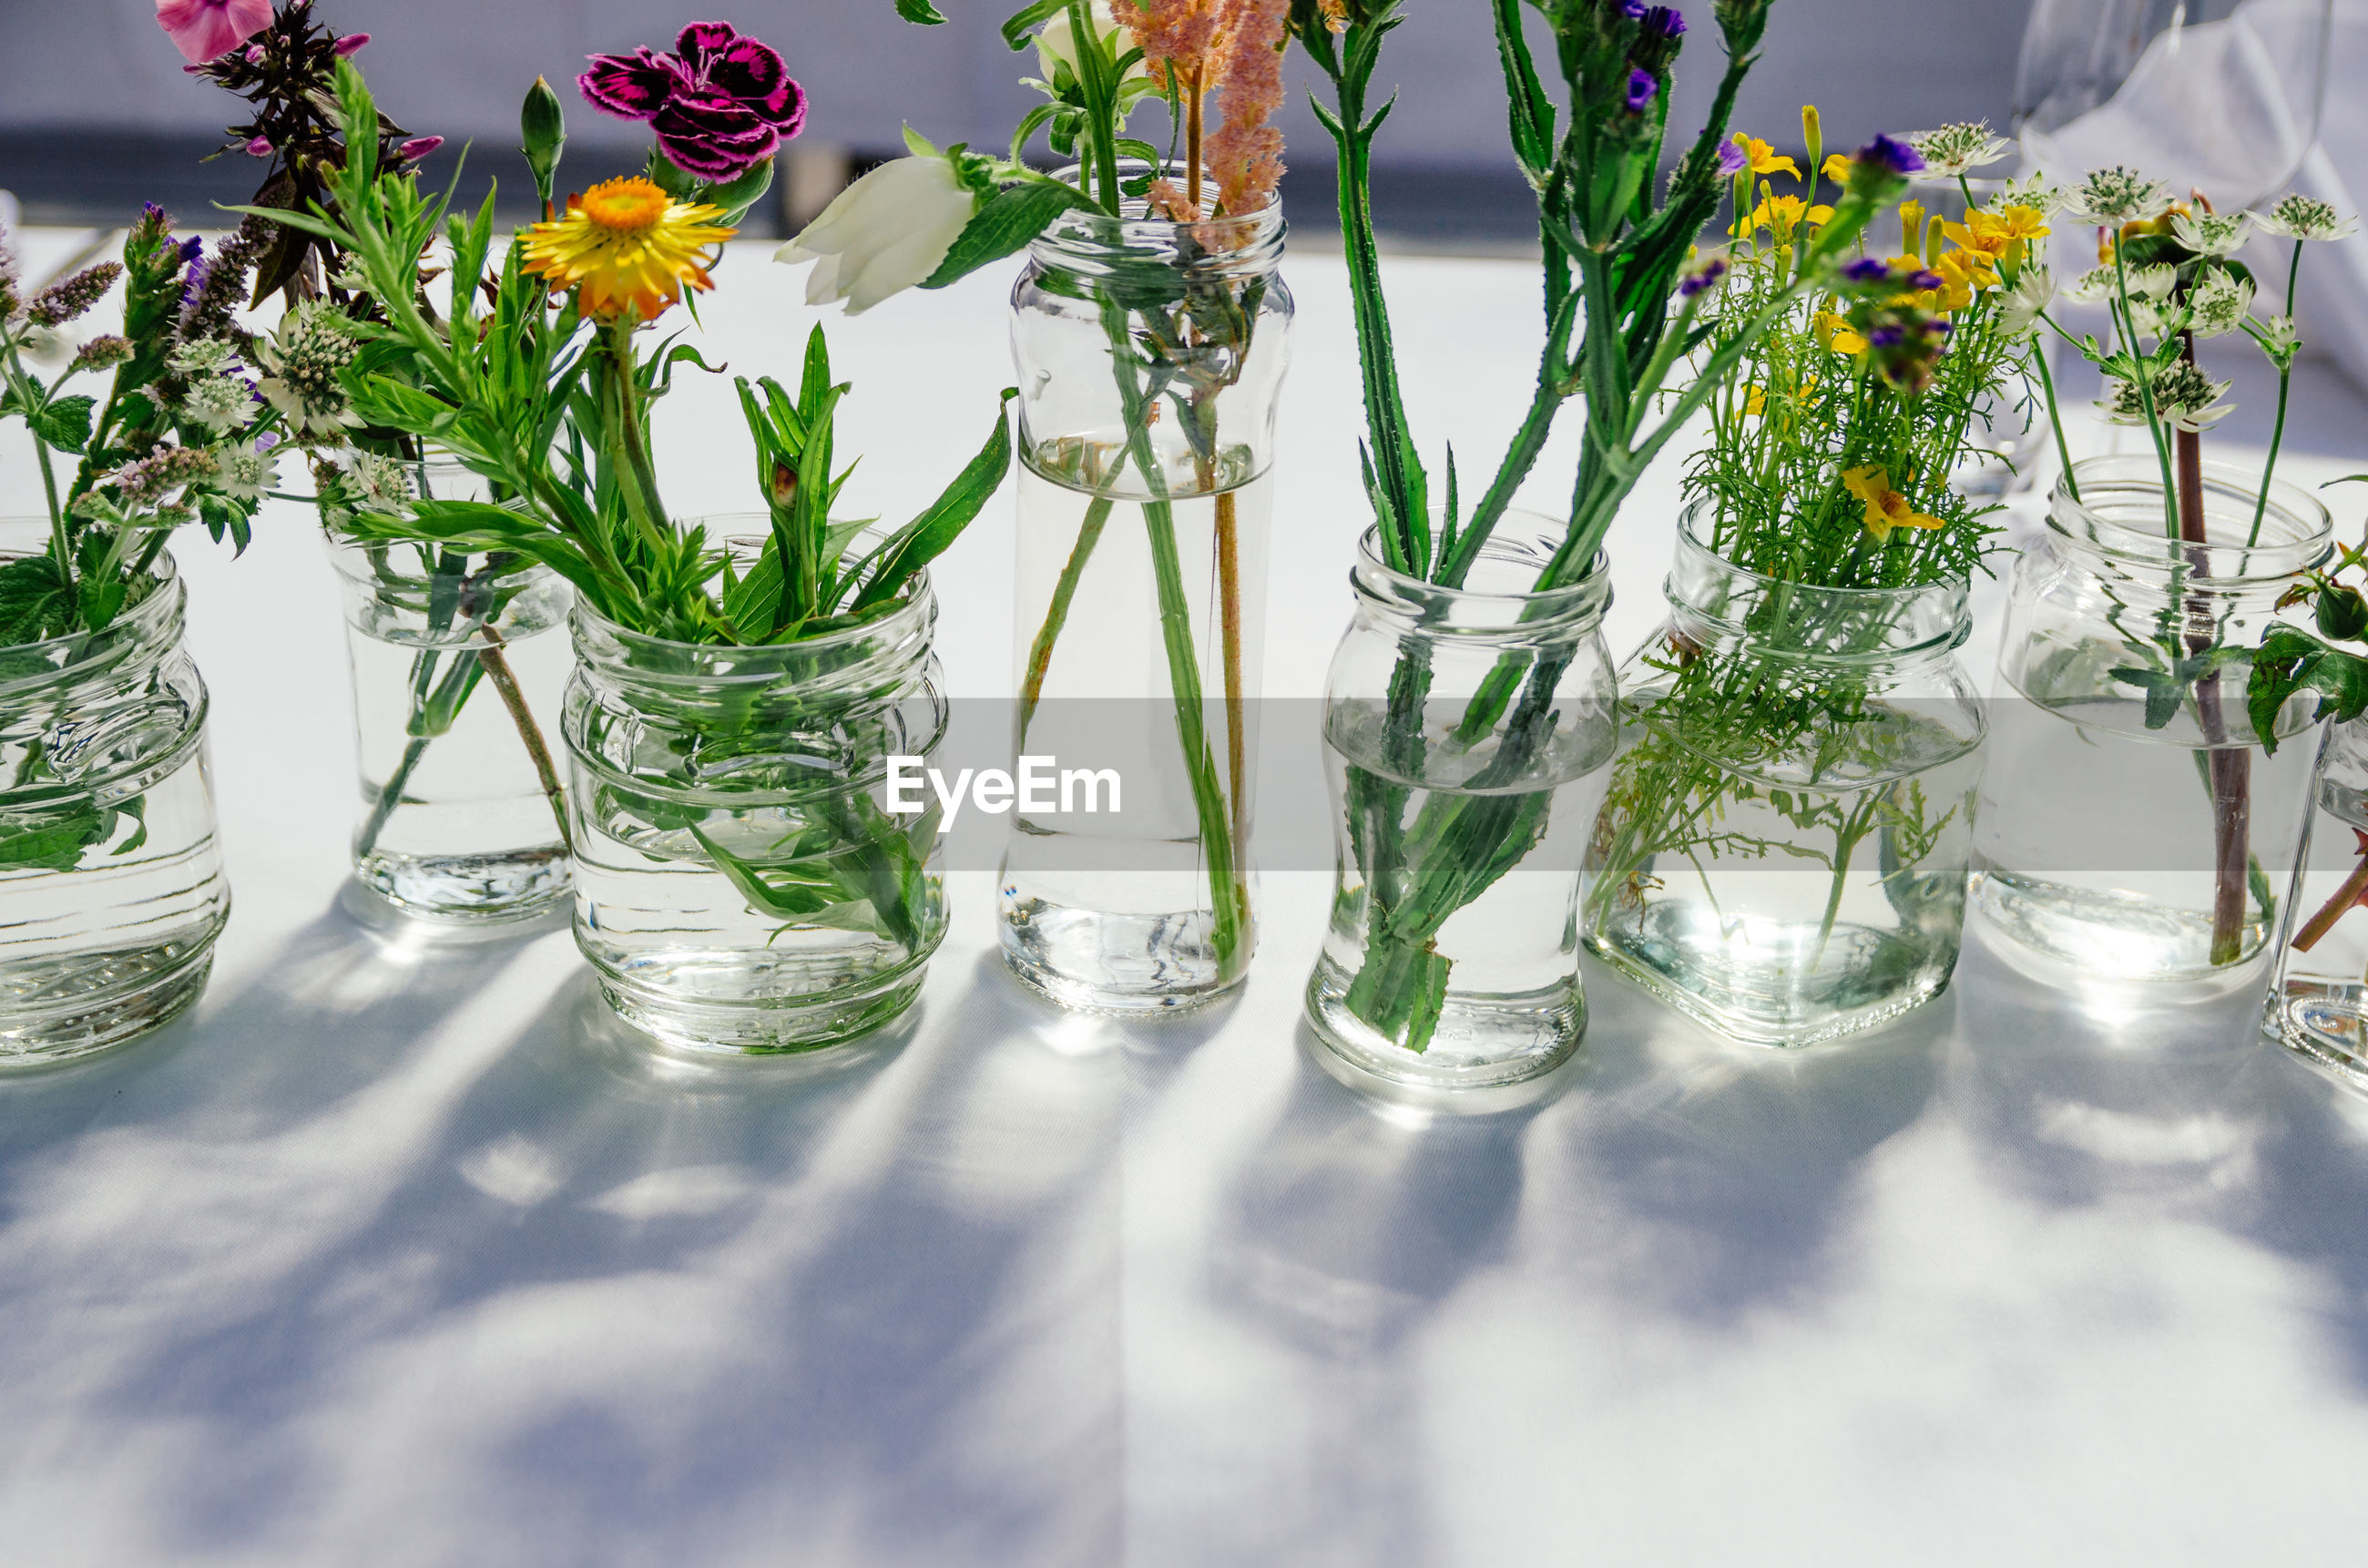 Close-up of flowers in glass on table